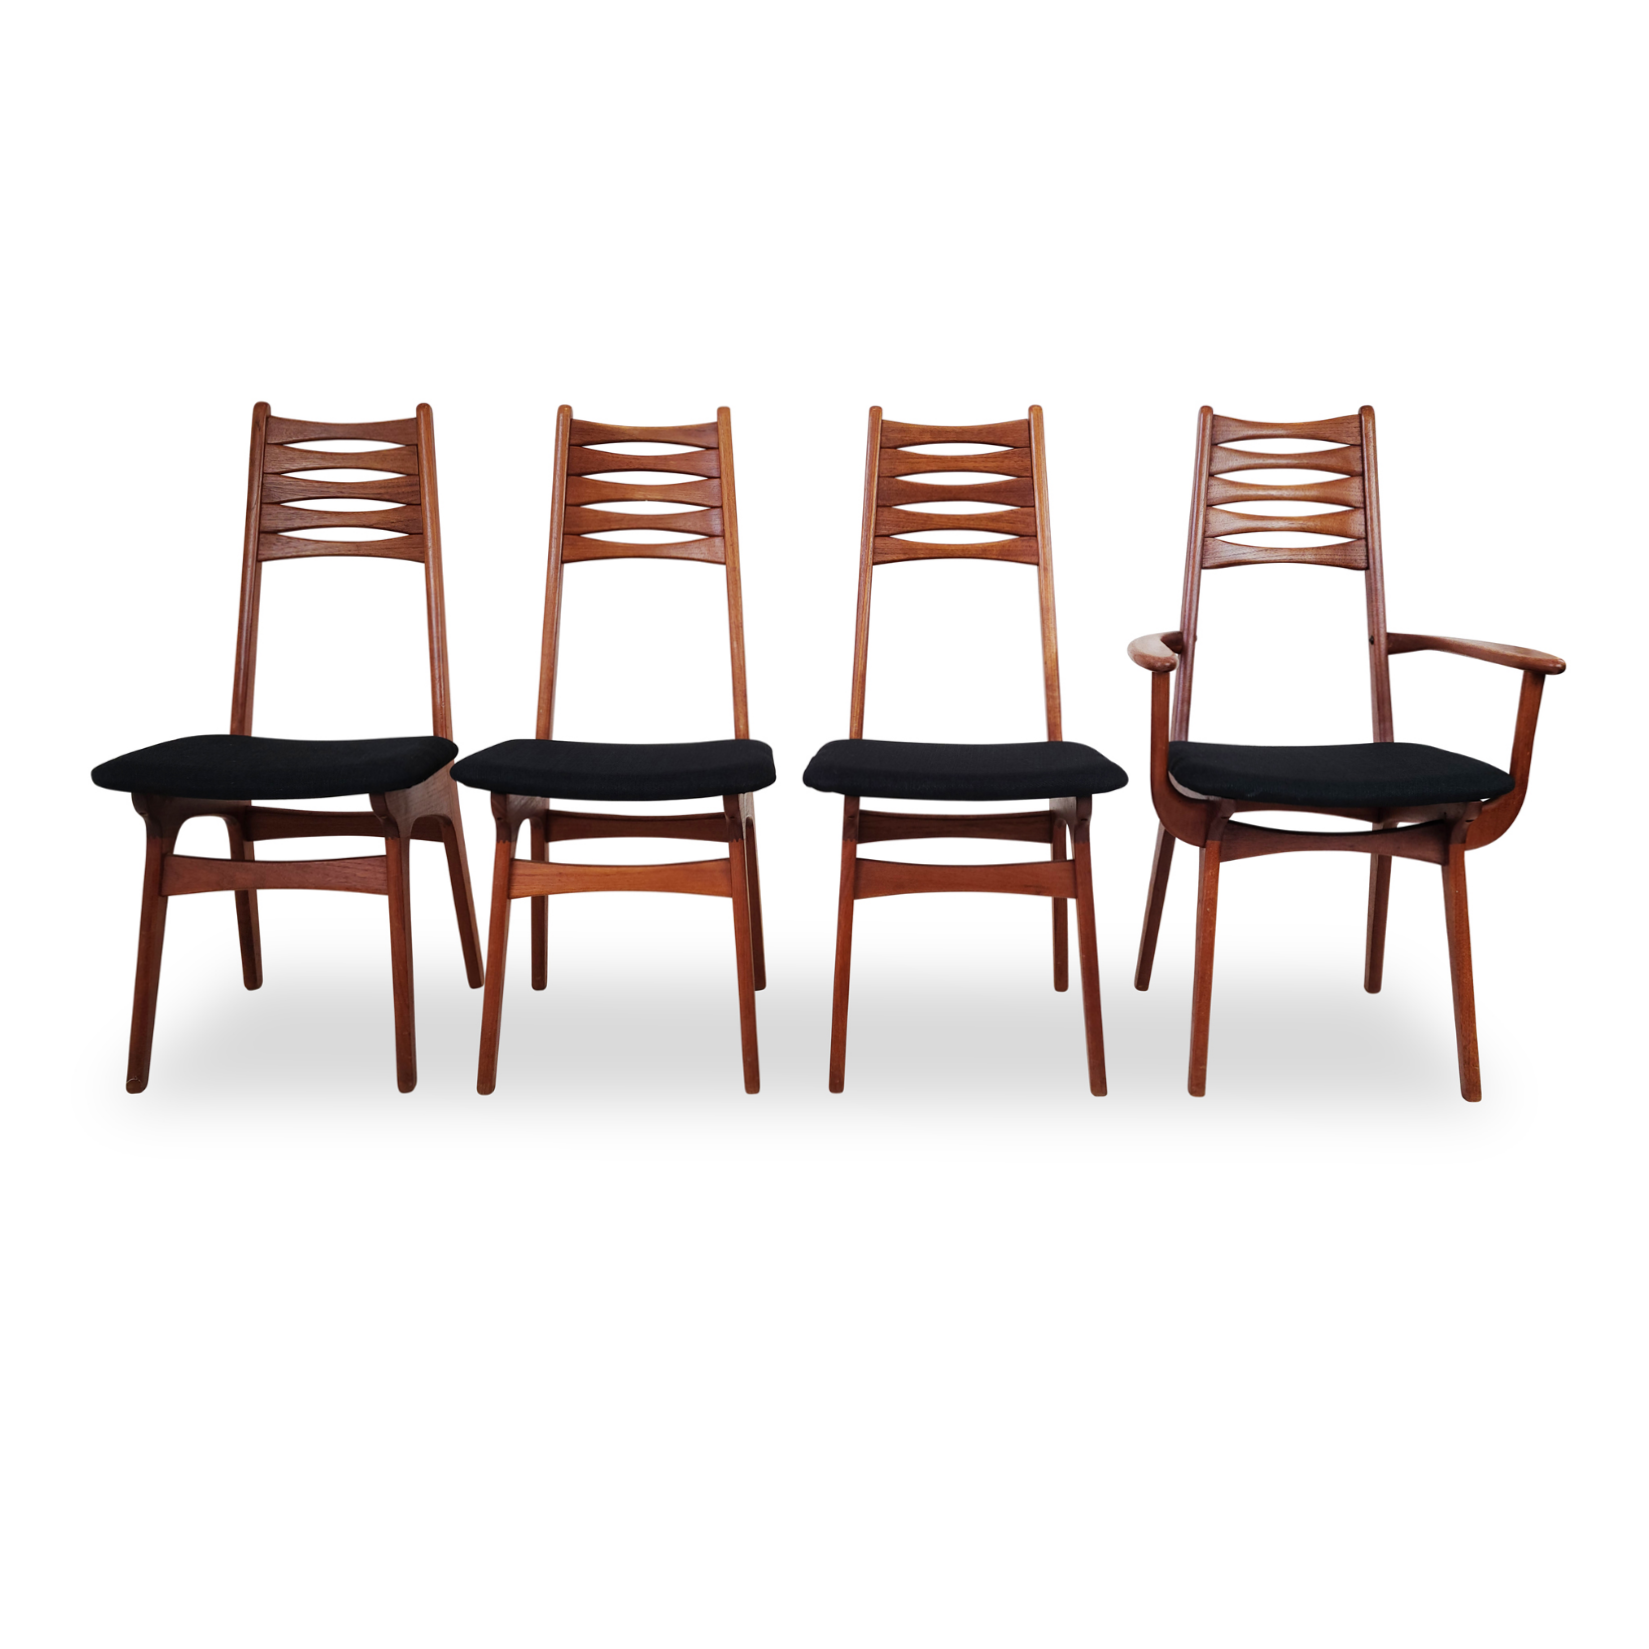 Teak Dining Chairs by Korup Stolefabrik